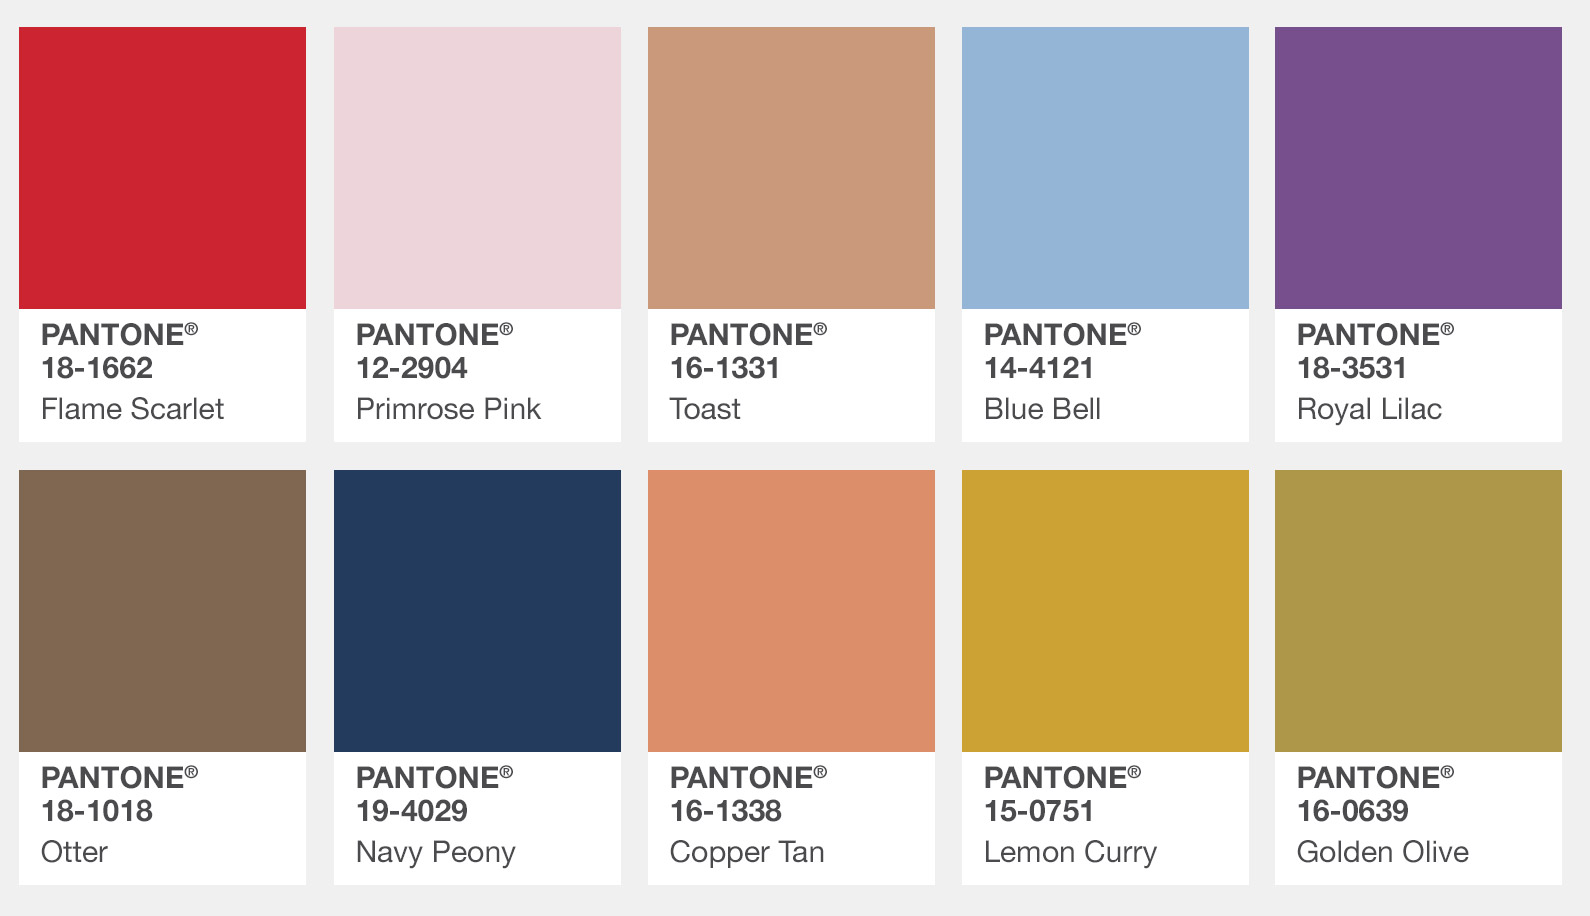 Pantone Autumn 2017 London fashion forecast